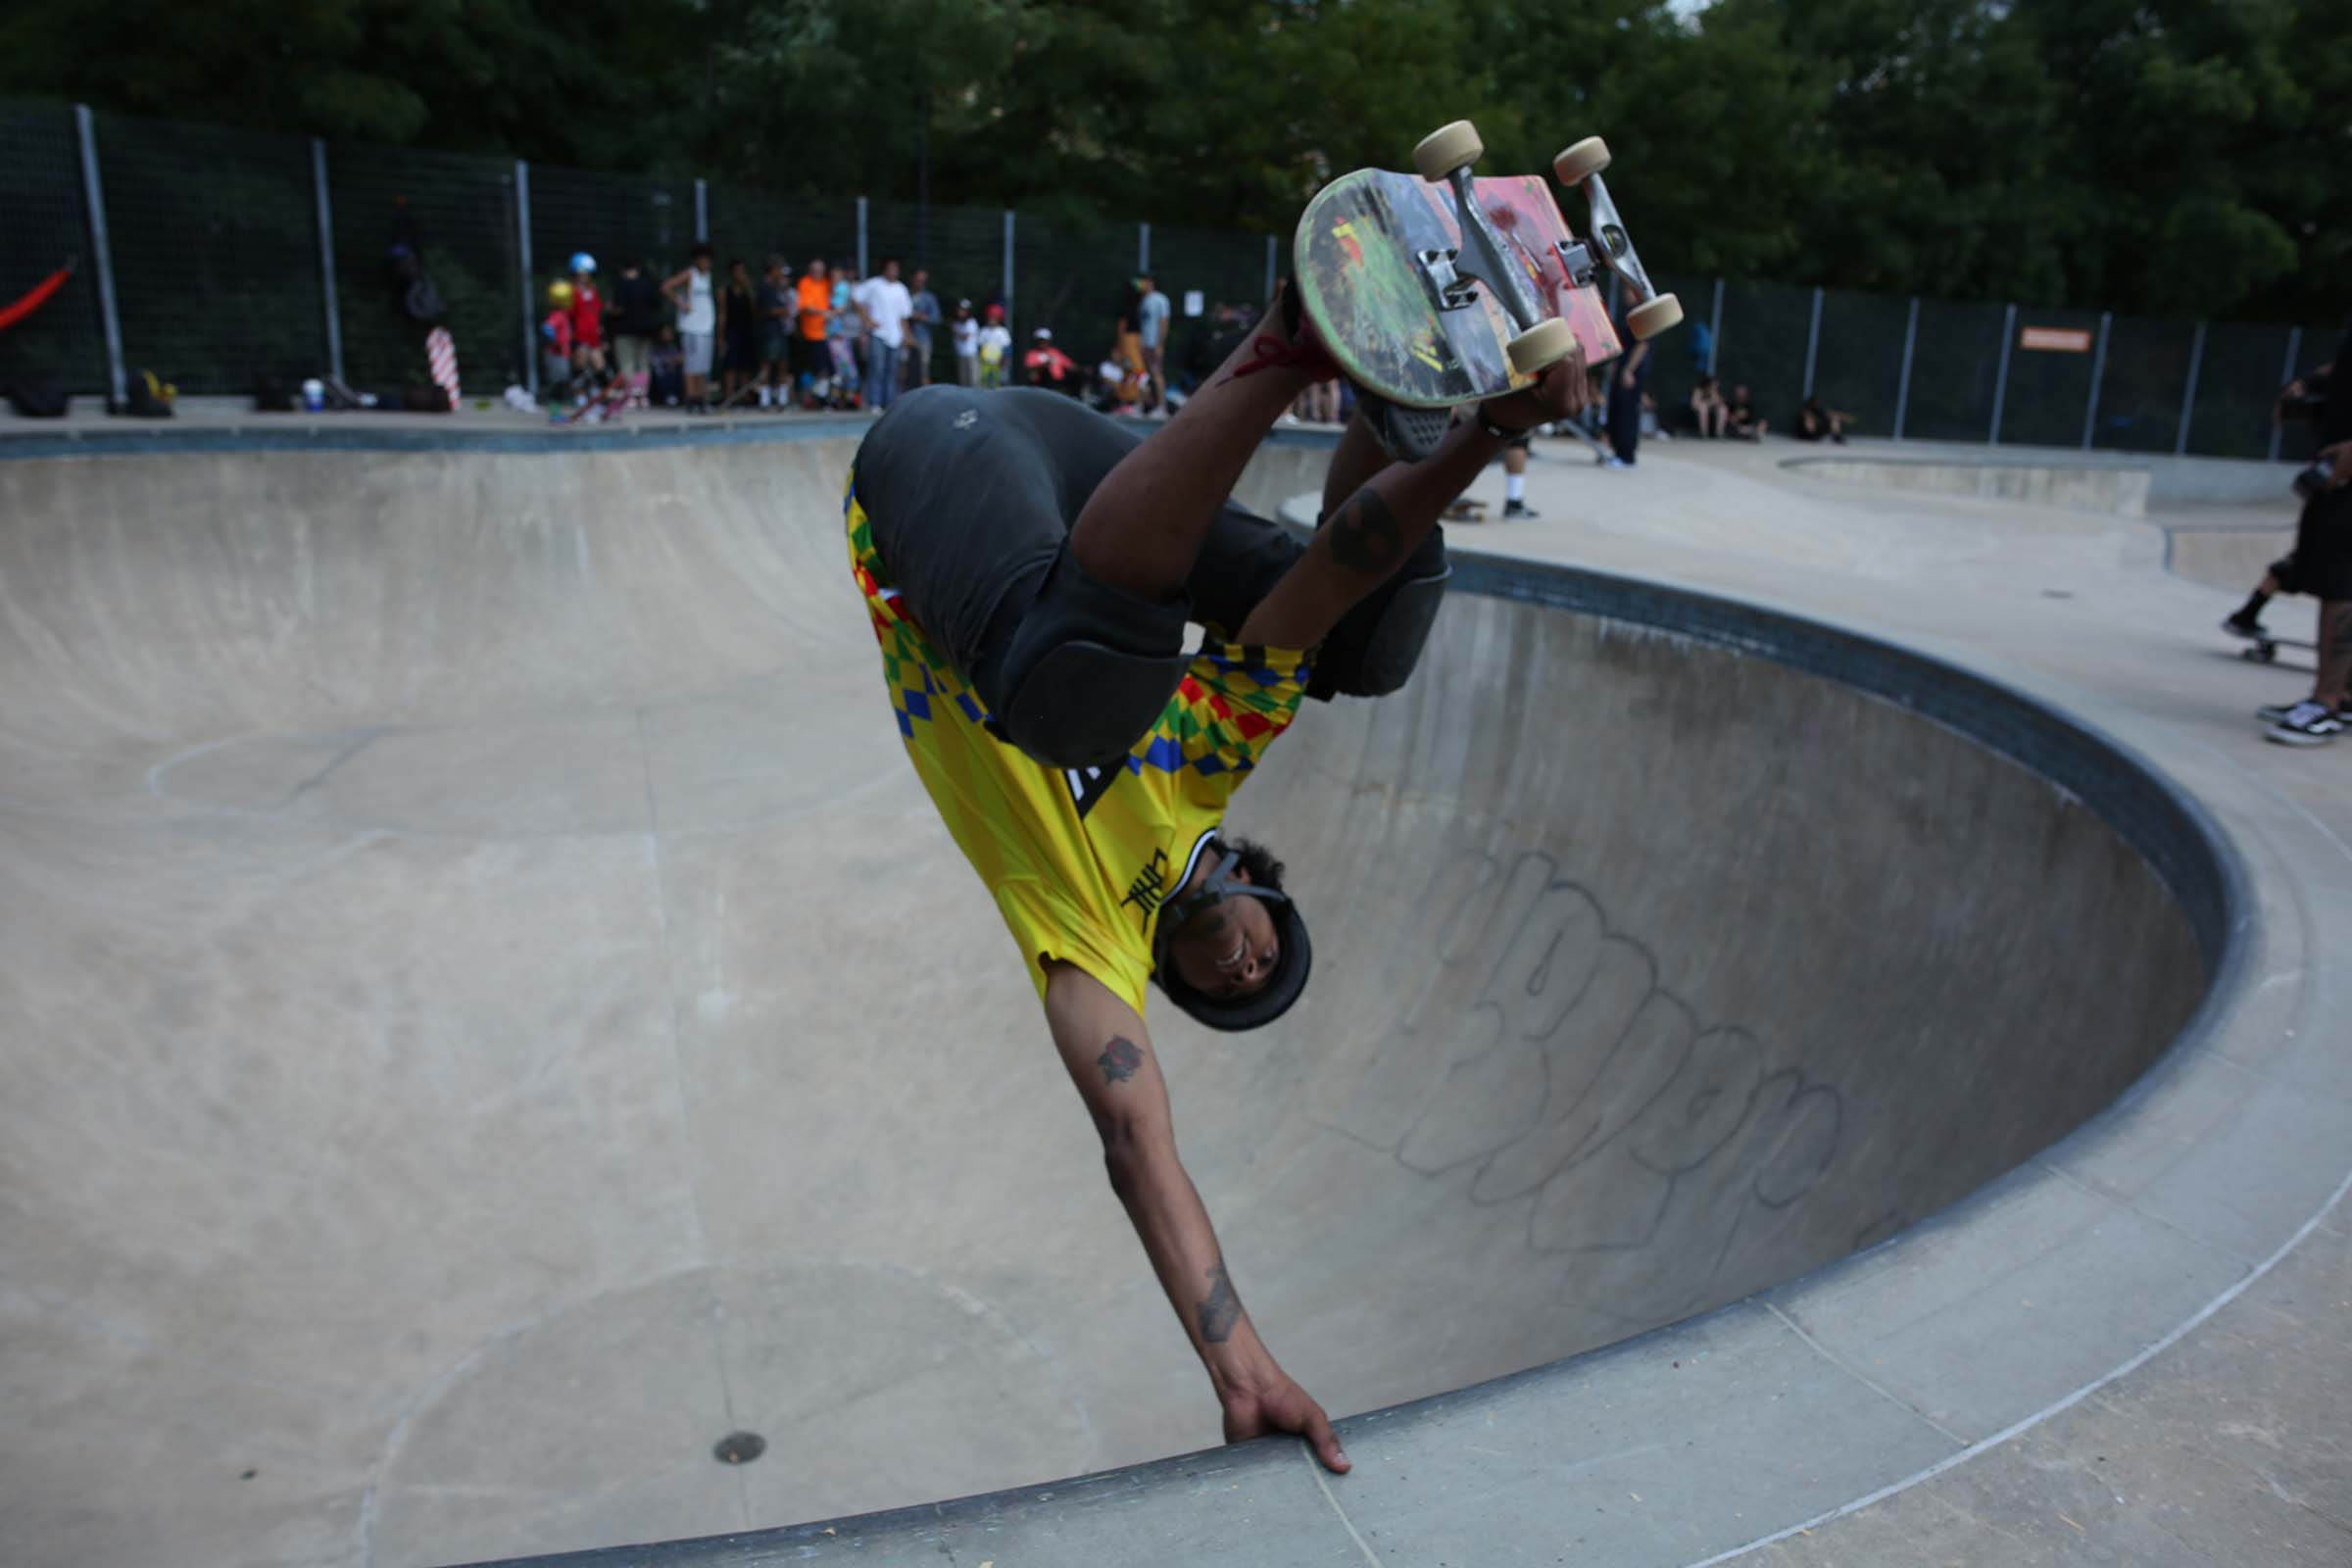 A skateboarder flies upside down and grabs the rim of the bowl